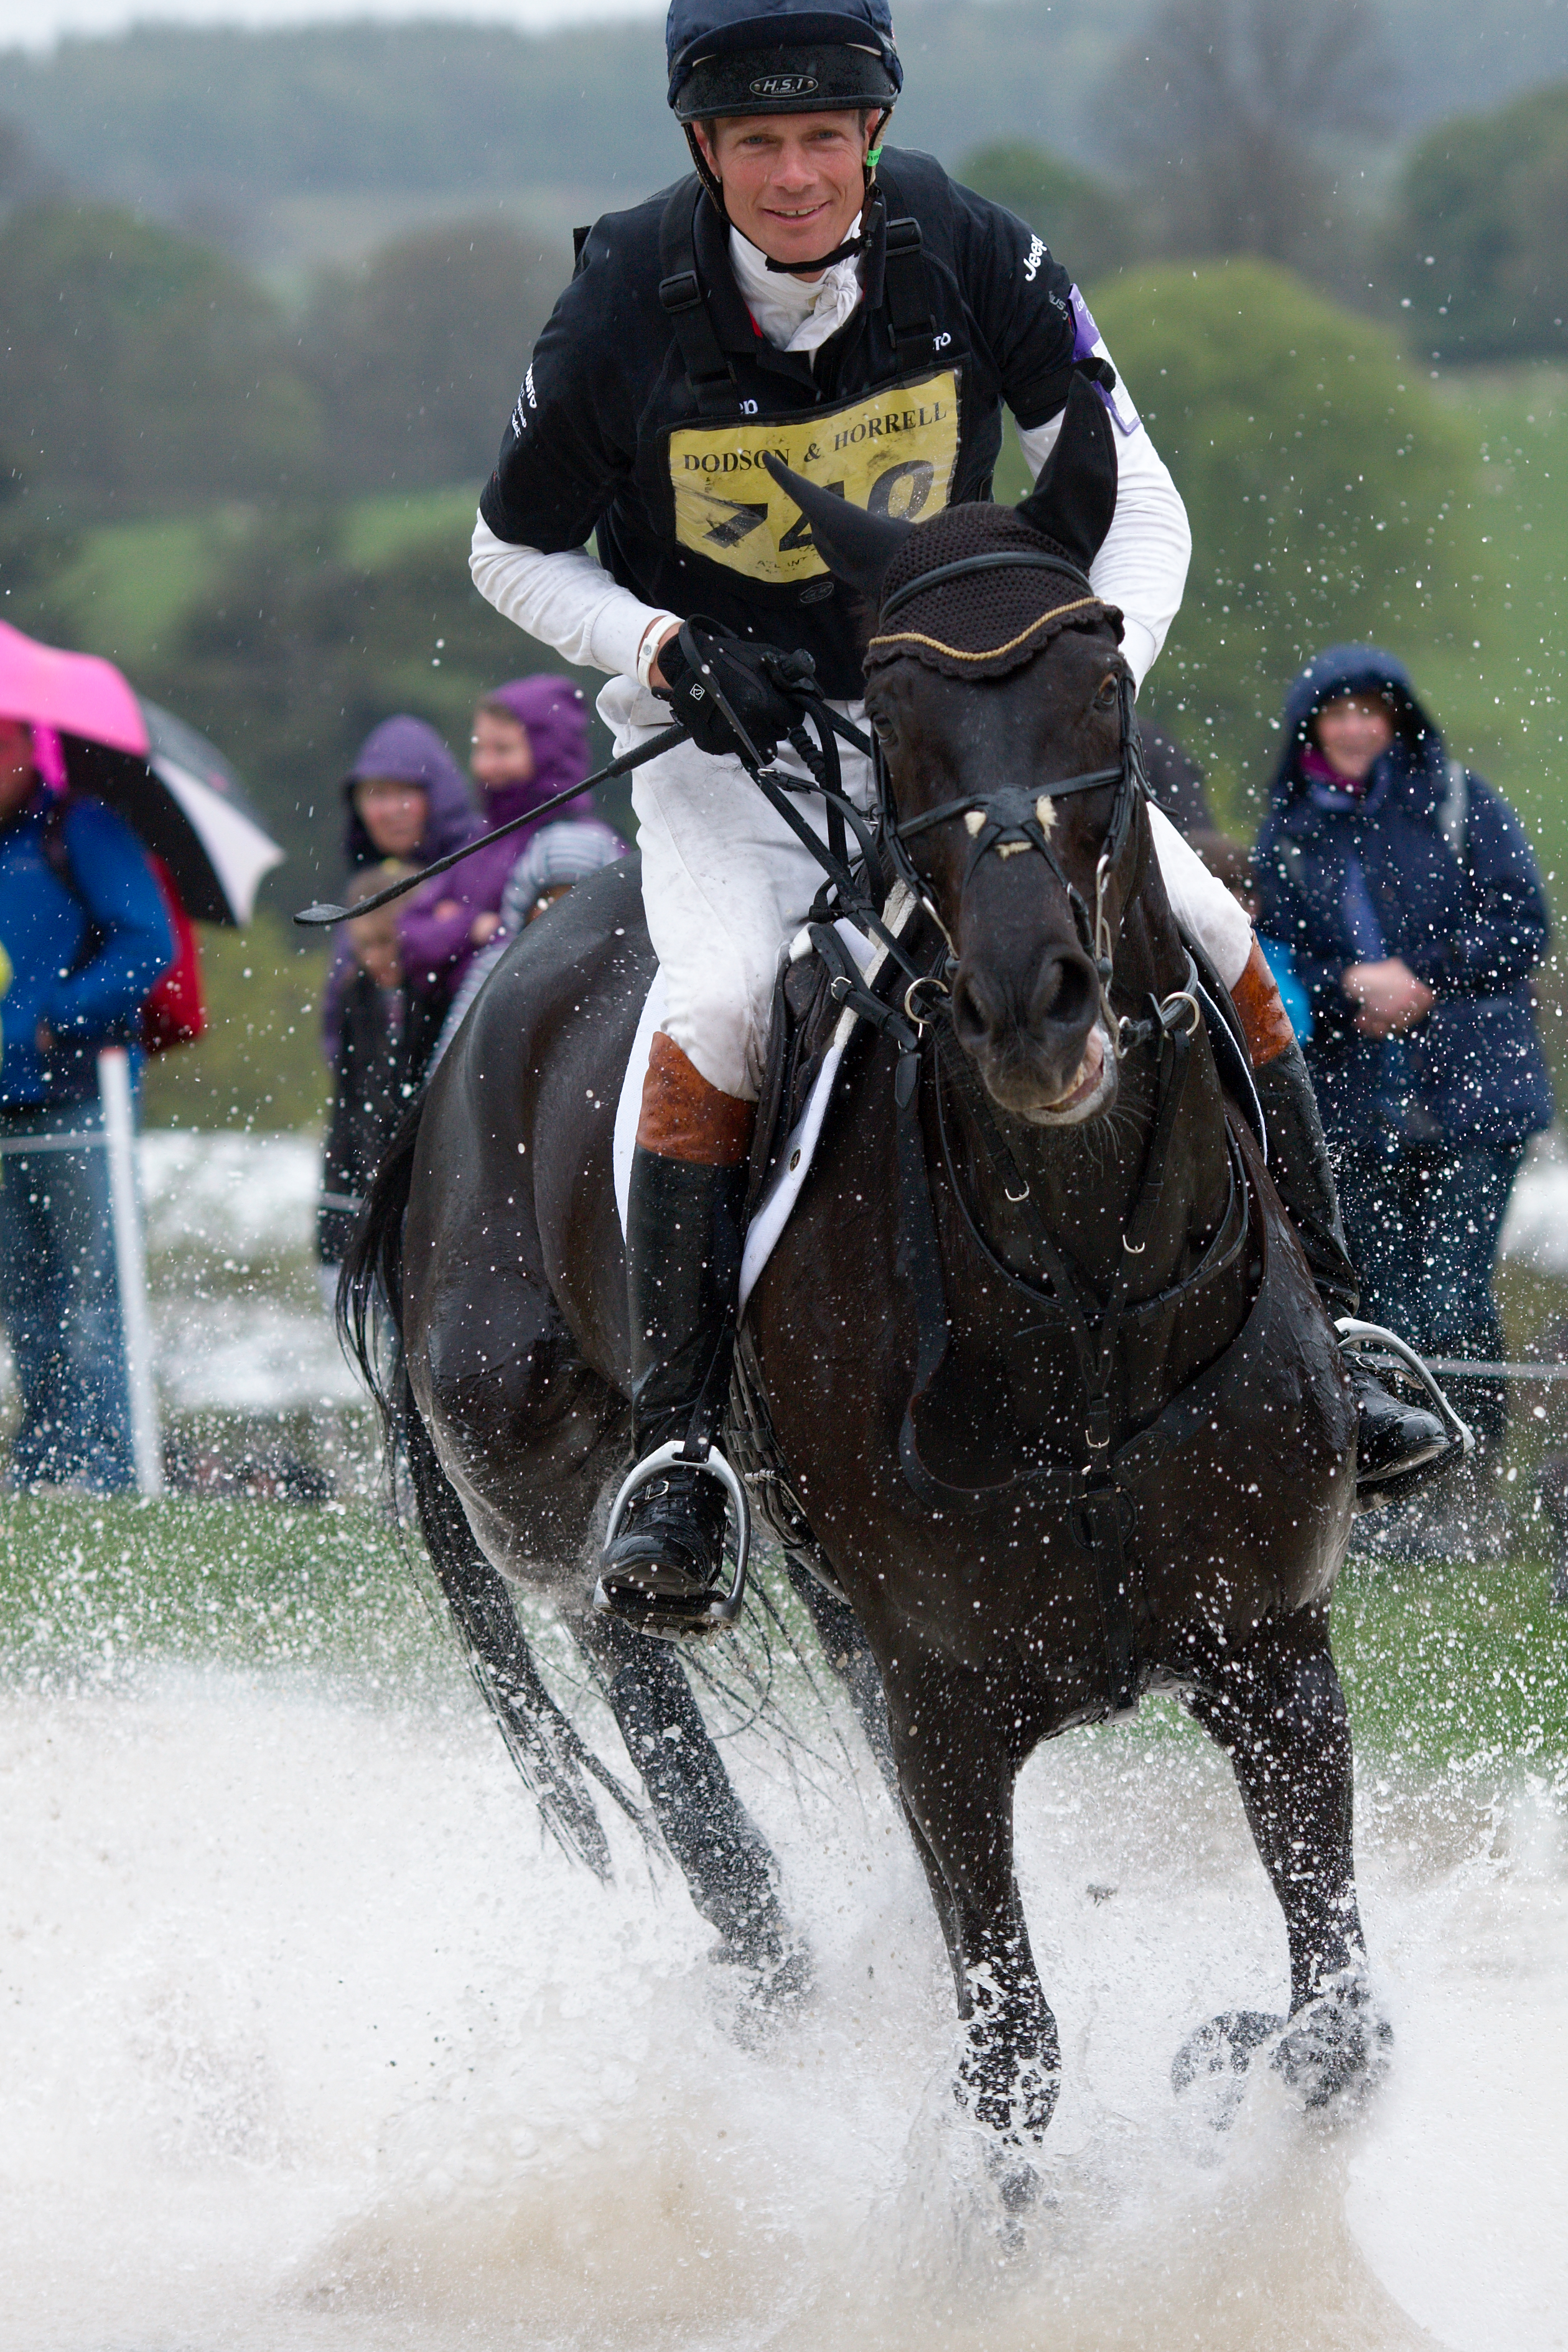 William Fox Pitt ancestry